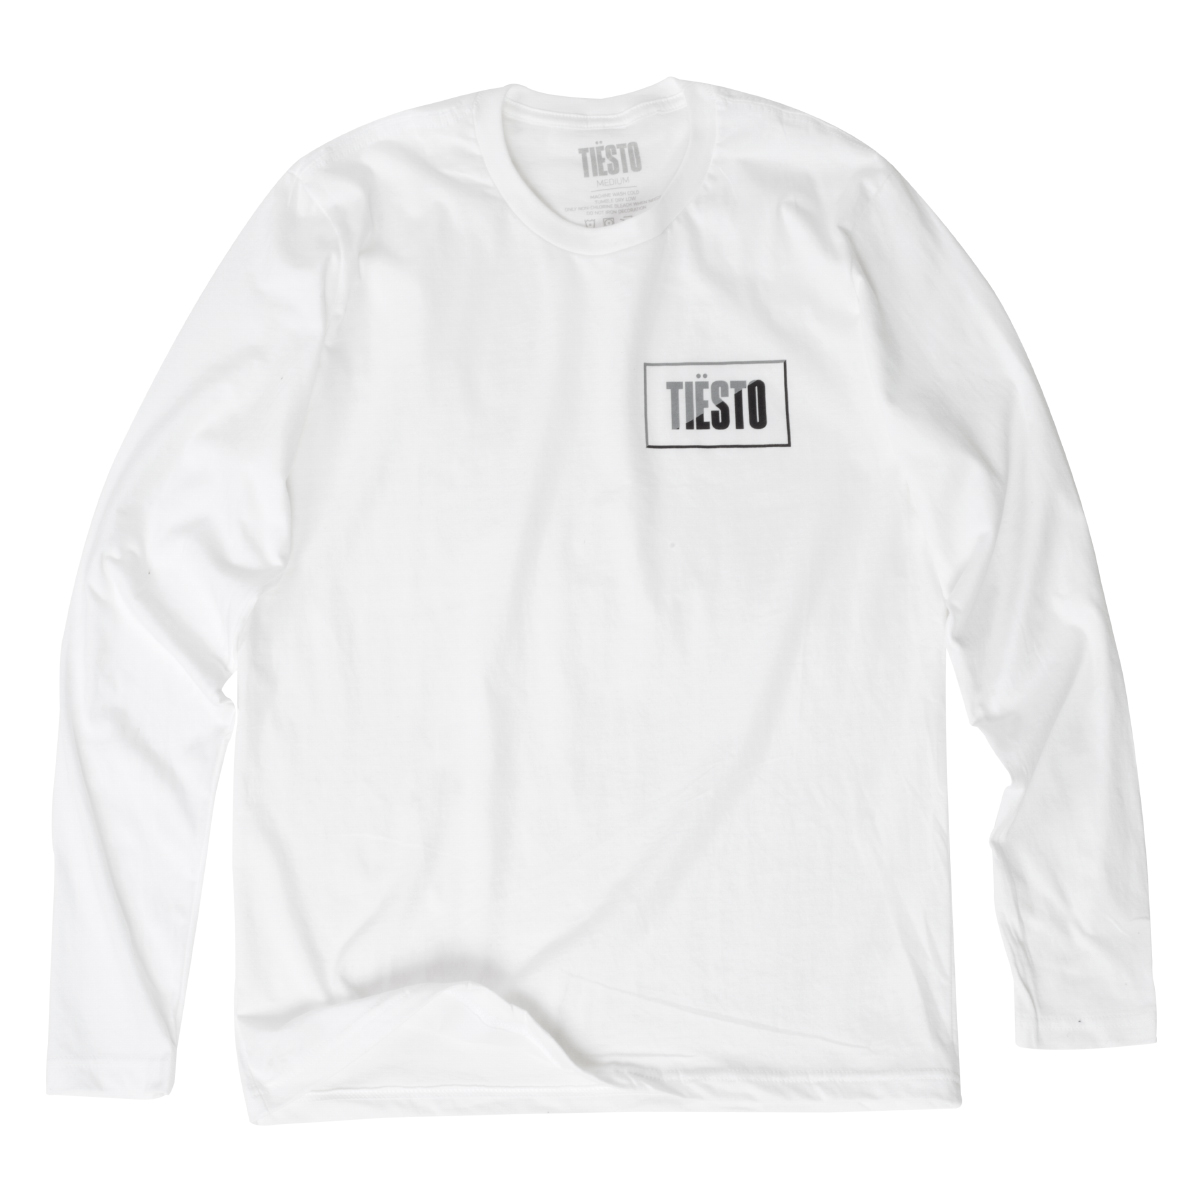 'RECTANGLE LOGO' LONG SLEEVE SHIRT